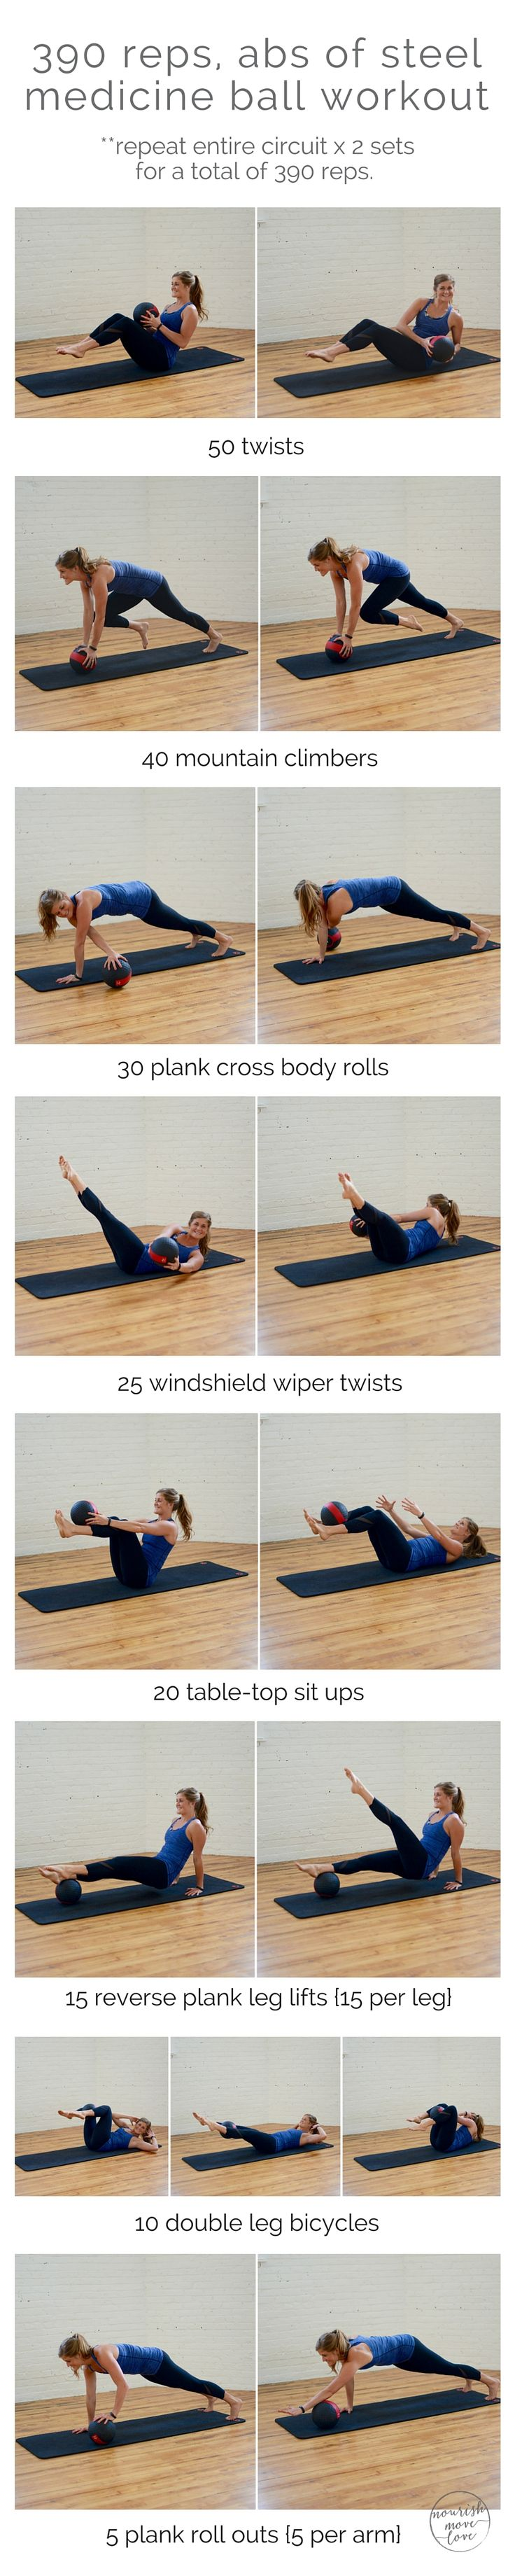 incorporate this 390 rep medicine ball ab routine into your cardio and strength training to sculpt a tighter torso and flatter abs.